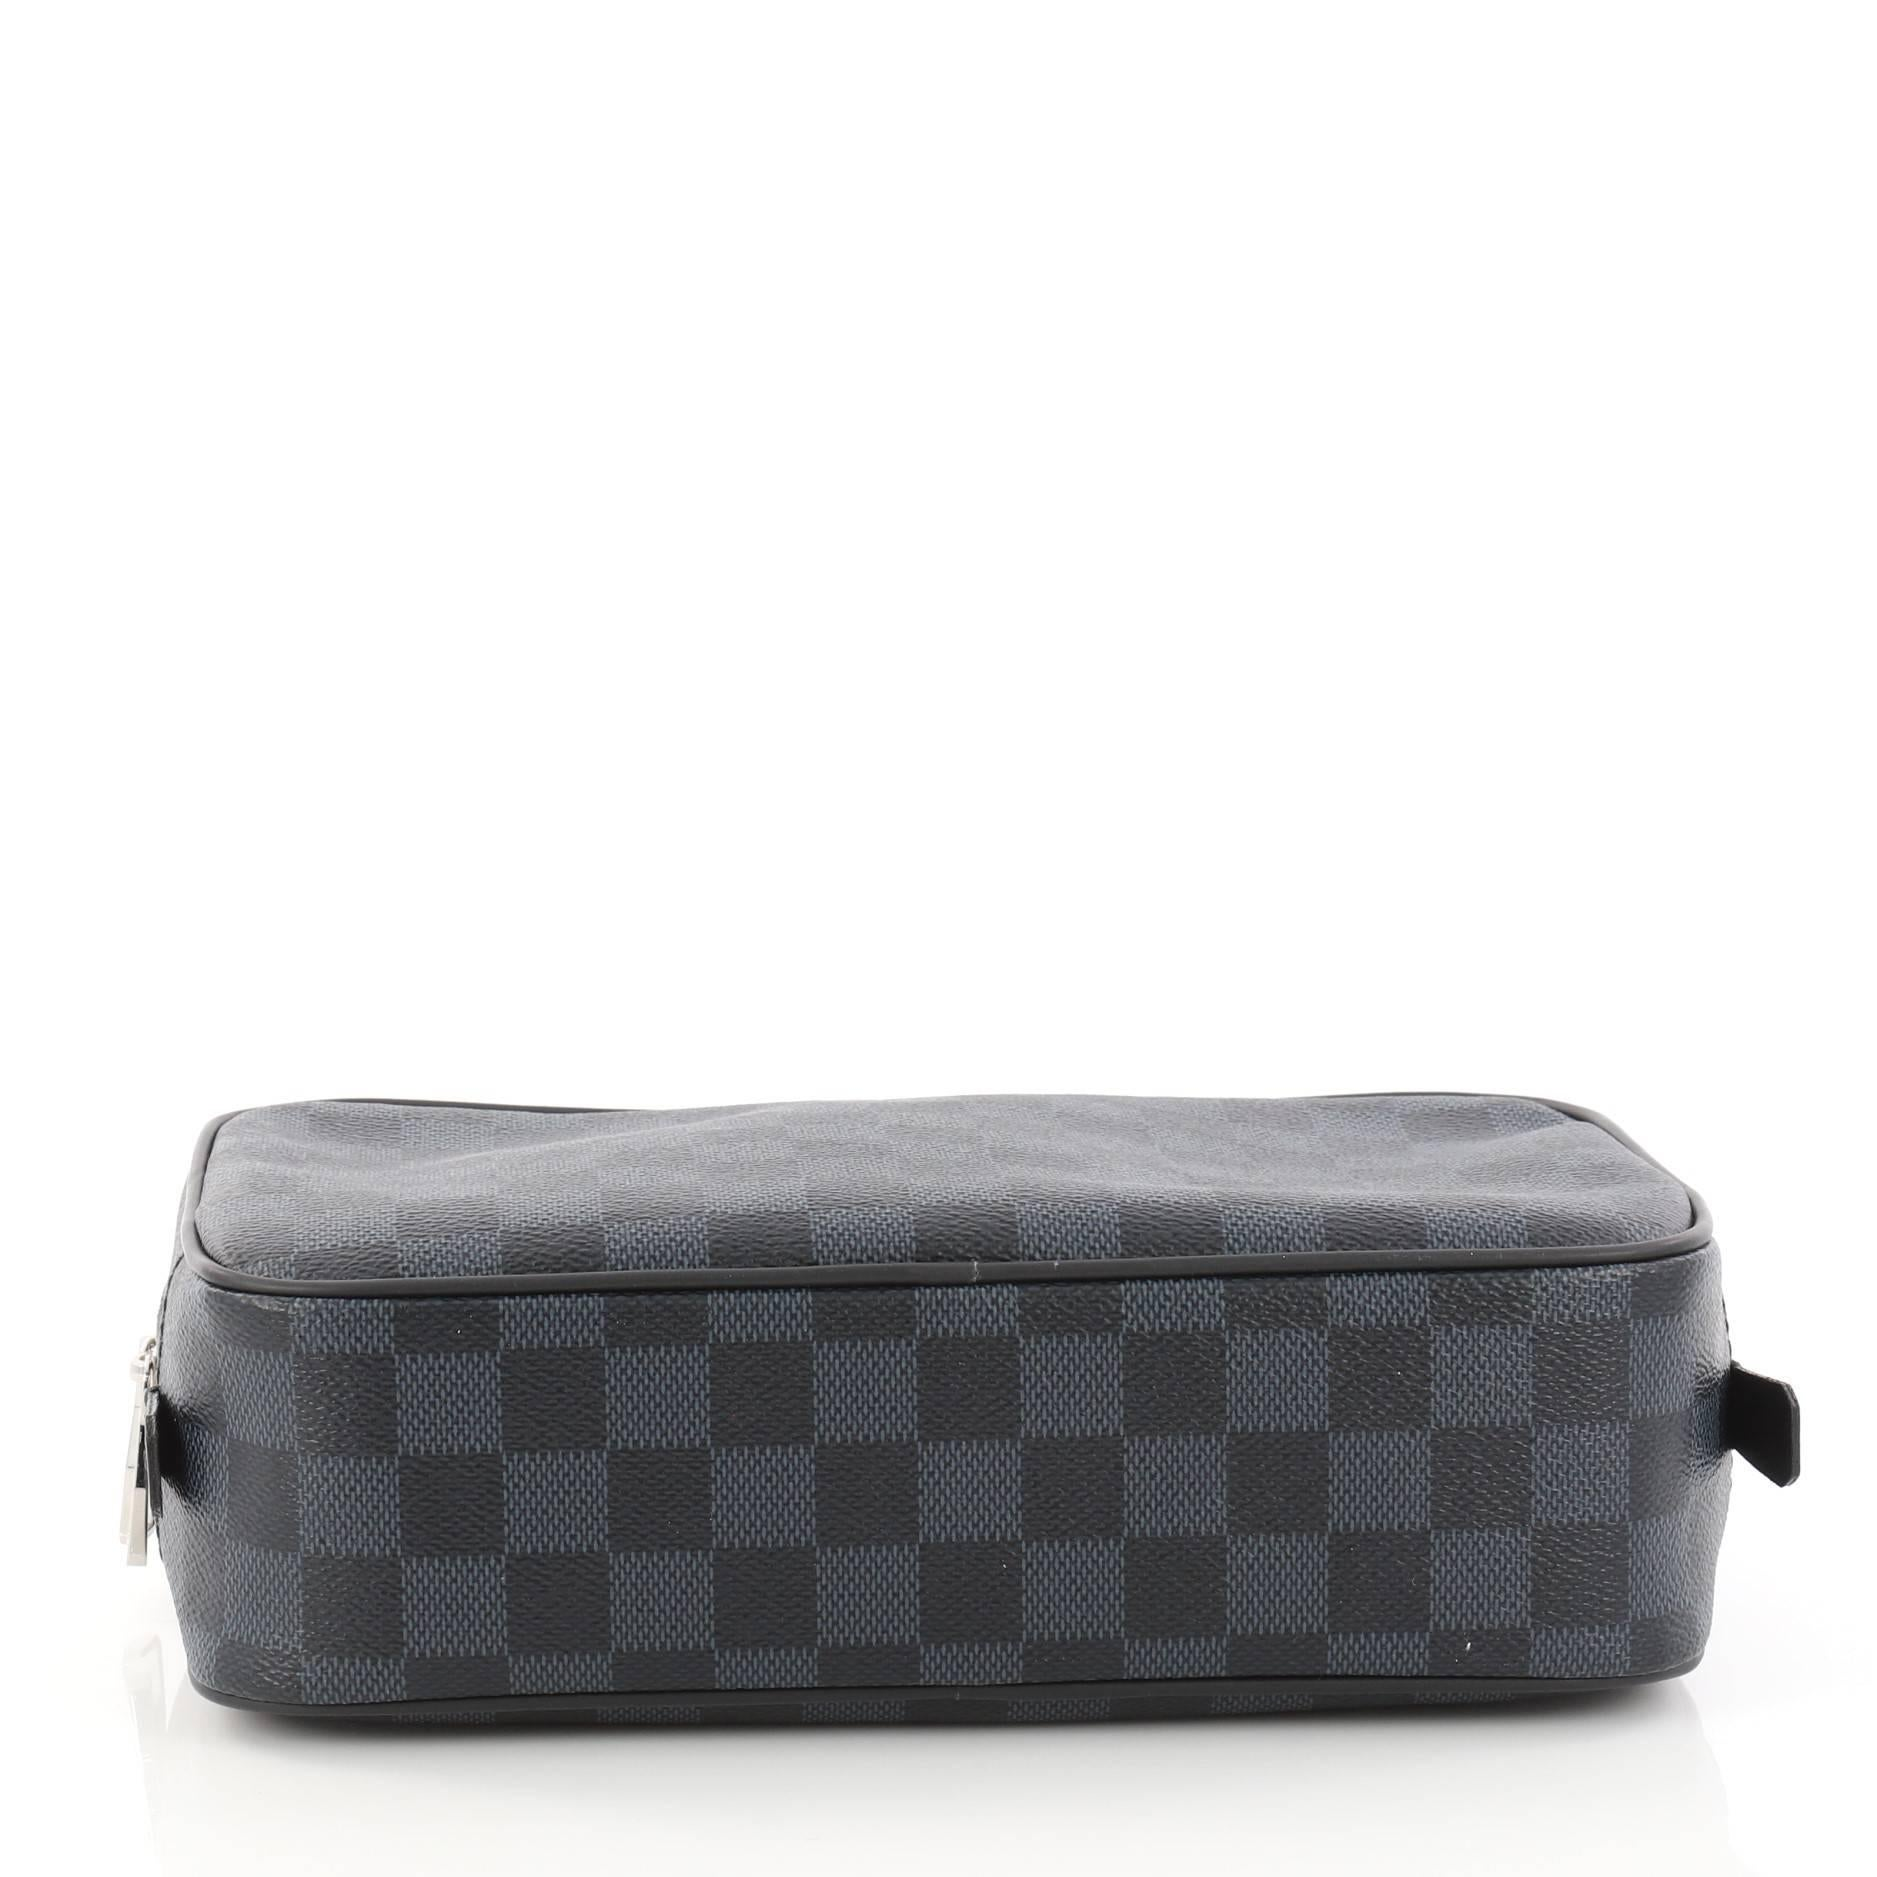 062f19db169b Louis Vuitton Toiletry Pouch Damier Graphite GM at 1stdibs